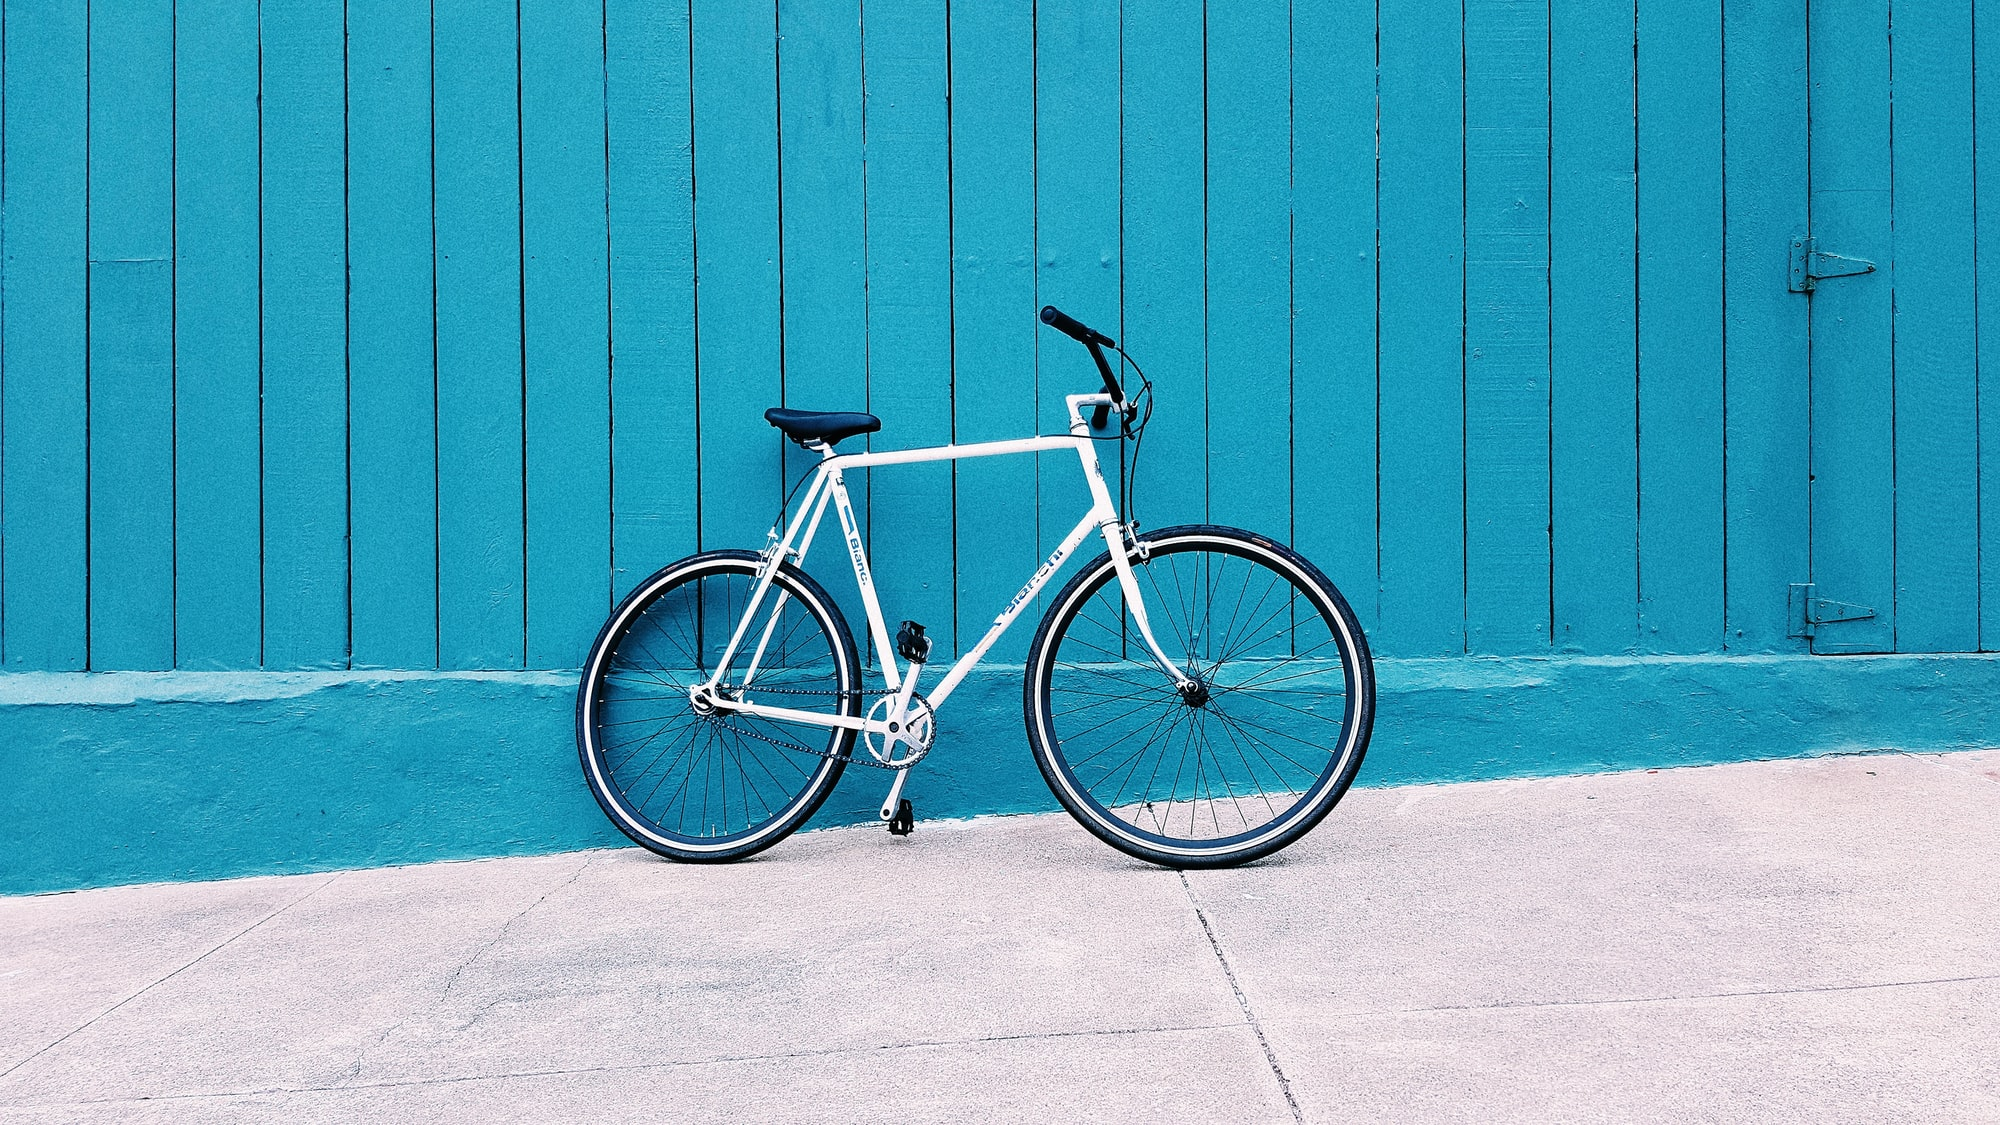 What you learn when your bike is stolen